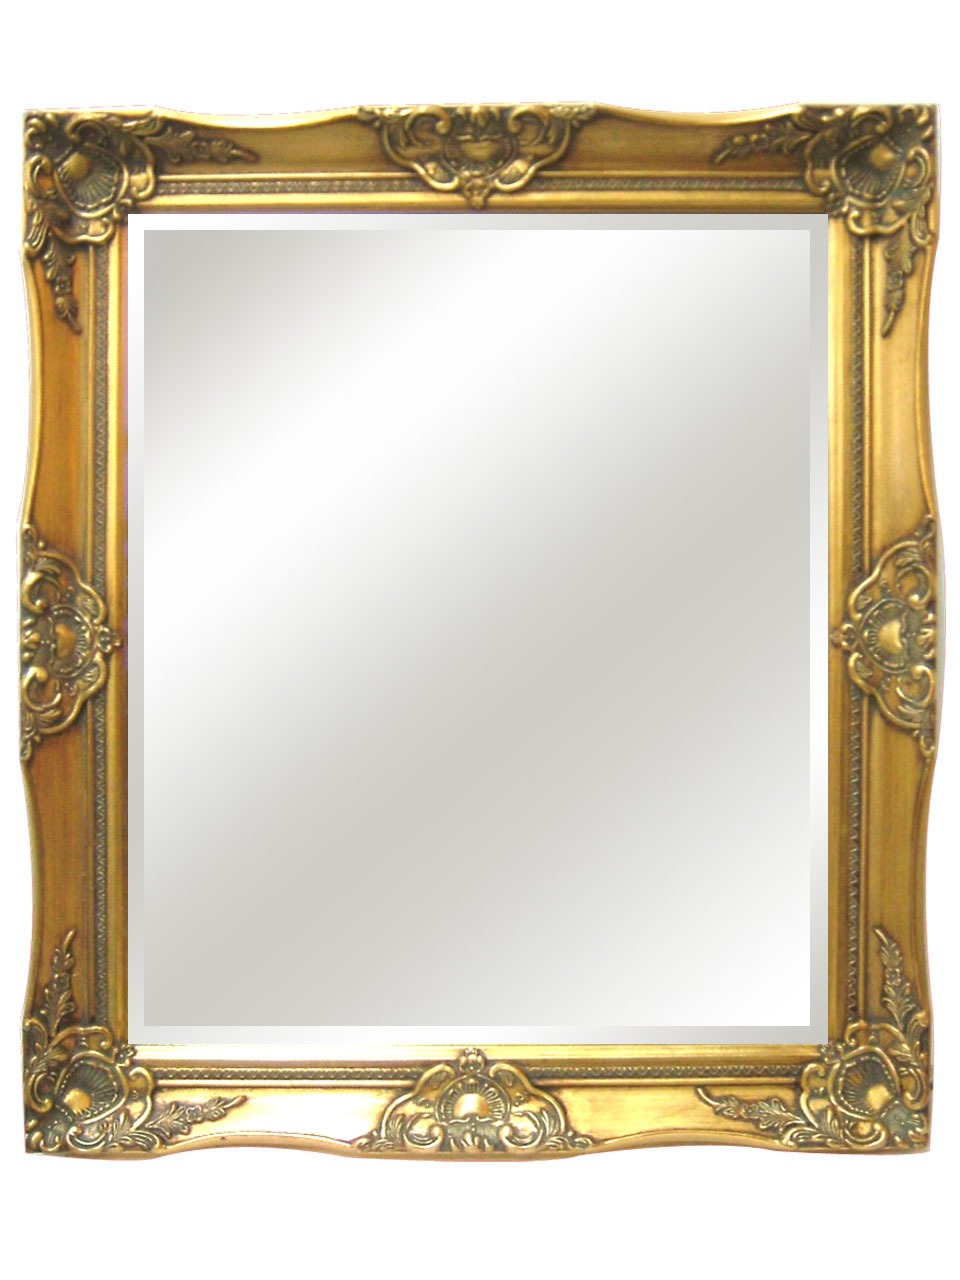 European style hand-carved mirror wooden frame fxsx01